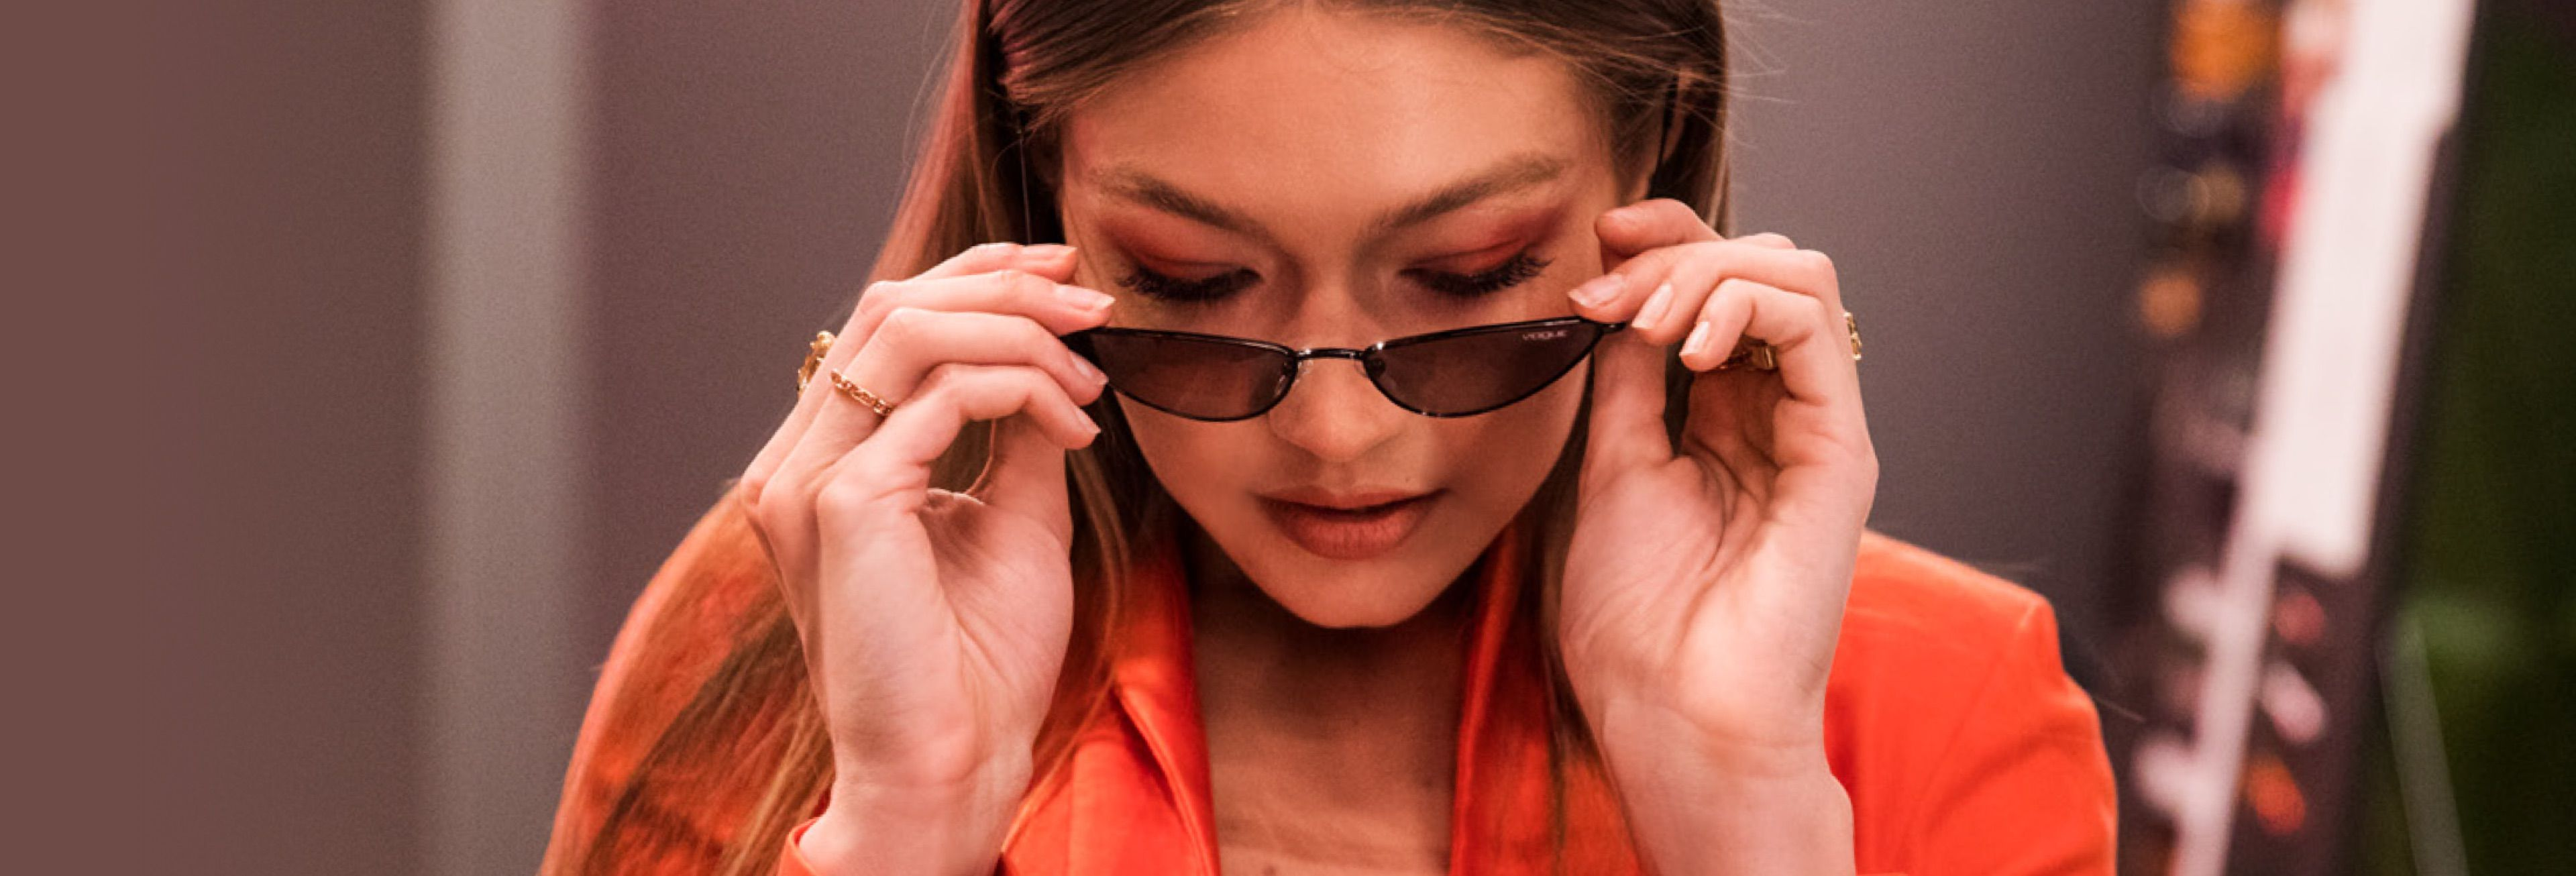 cc561c233e Gigi Hadid collection hero image